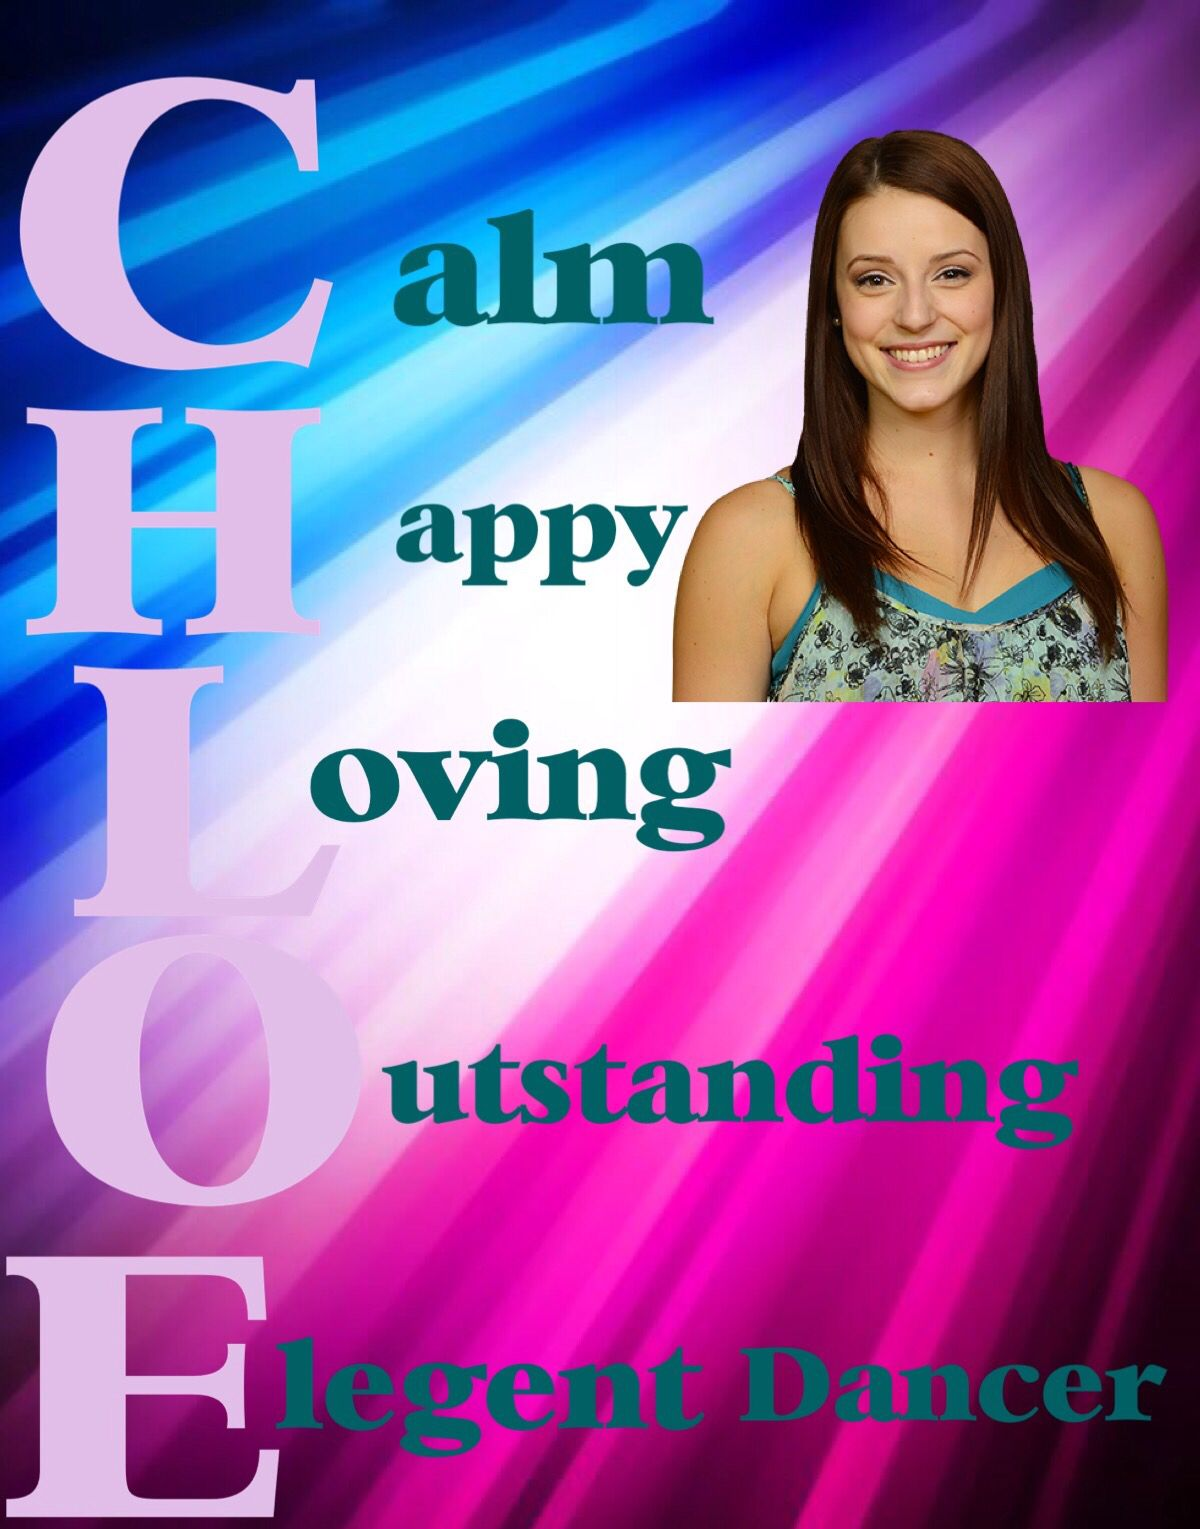 Chloe From The Next Step Dance Steps Step Tv The Next Step